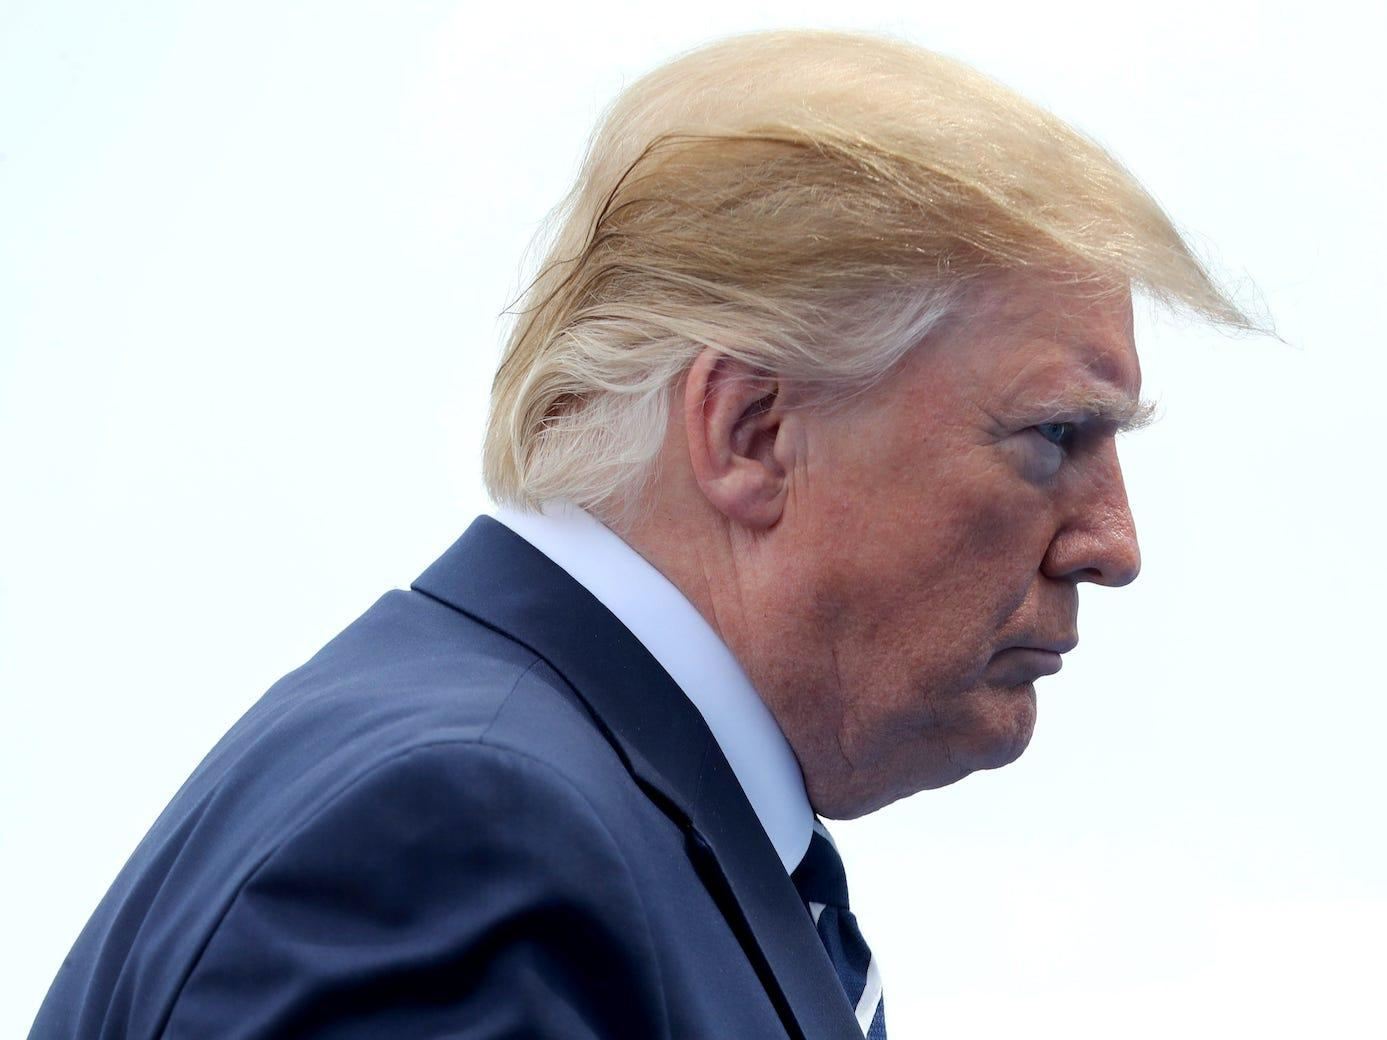 The New York Times' bombshell reporting on Trump's tax returns could significantly bolster Manhattan prosecutors' investigation into his business practices